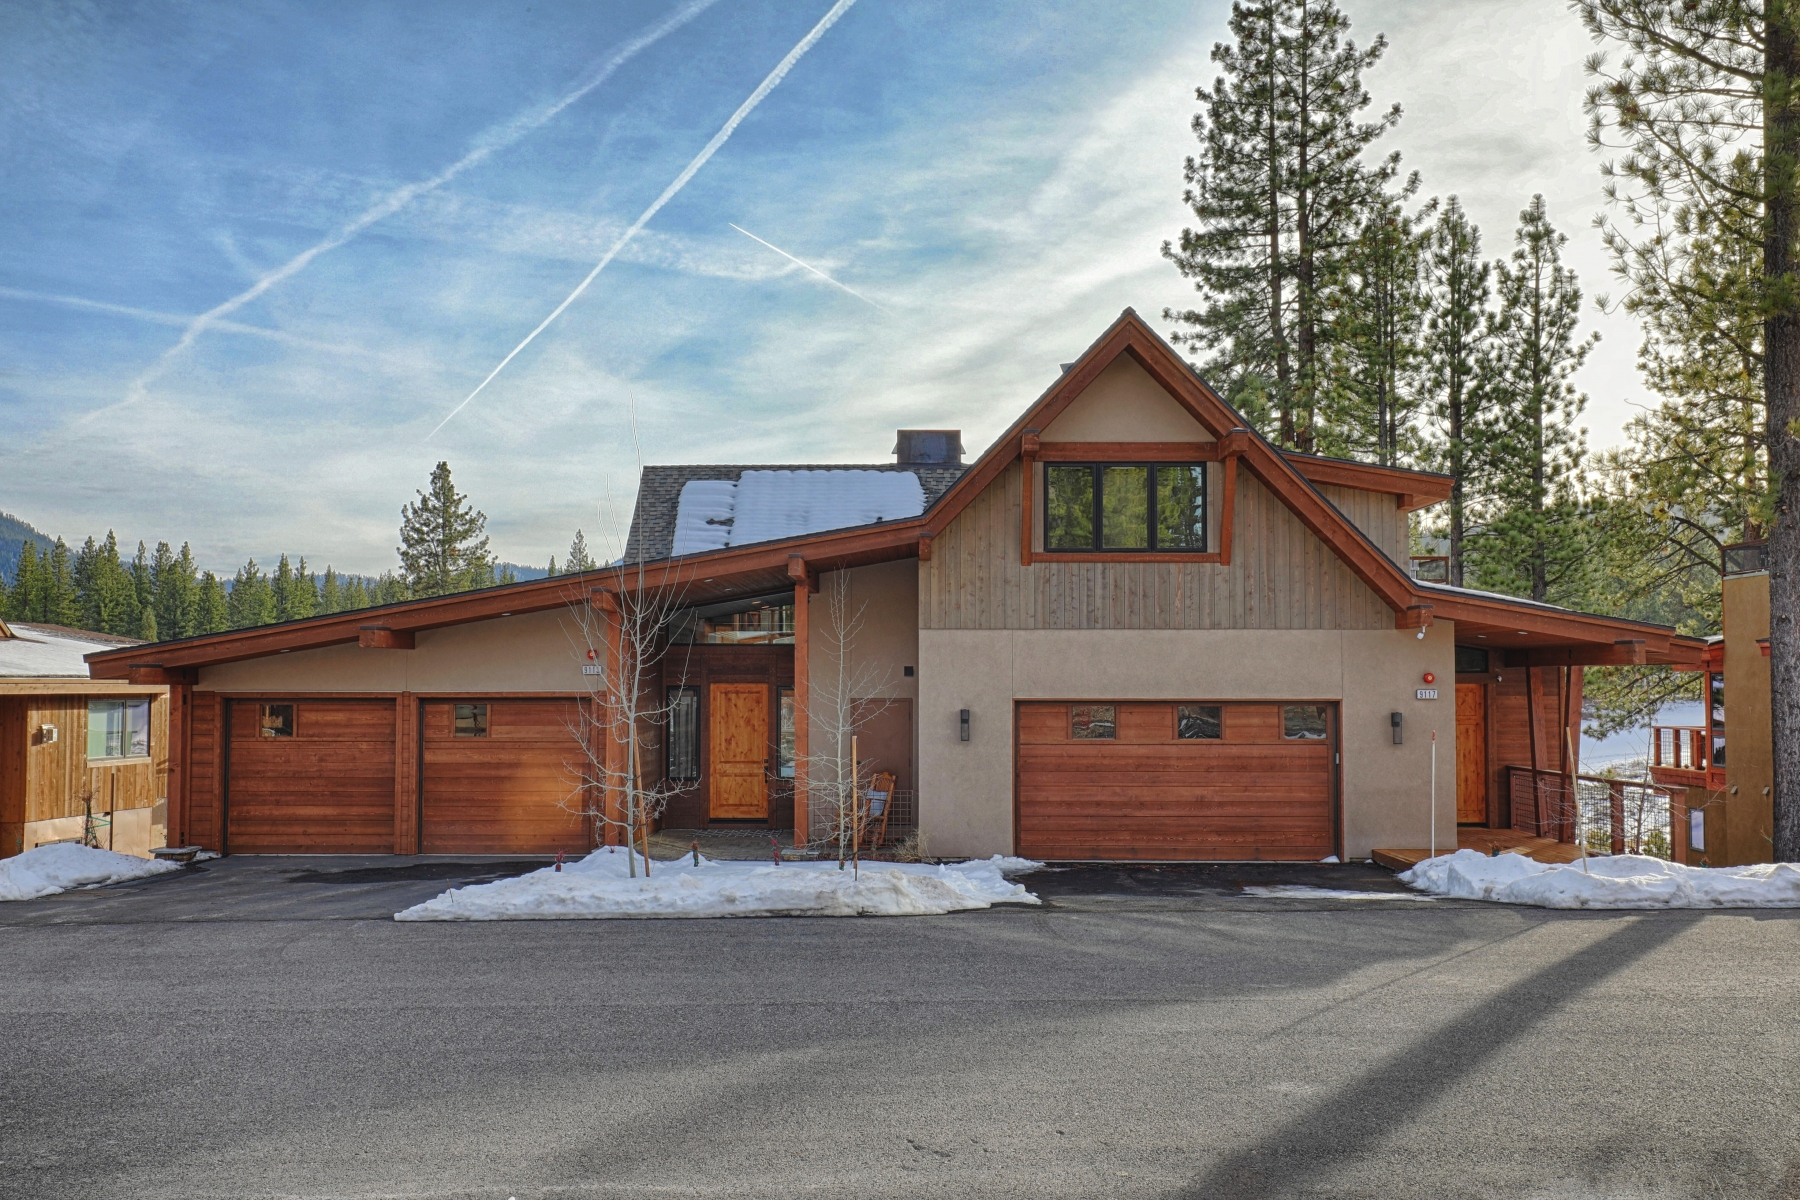 Additional photo for property listing at 9113 Heartwood Drive, Truckee CA, 96161 9113 Heartwood Drive Truckee, California 96161 Estados Unidos